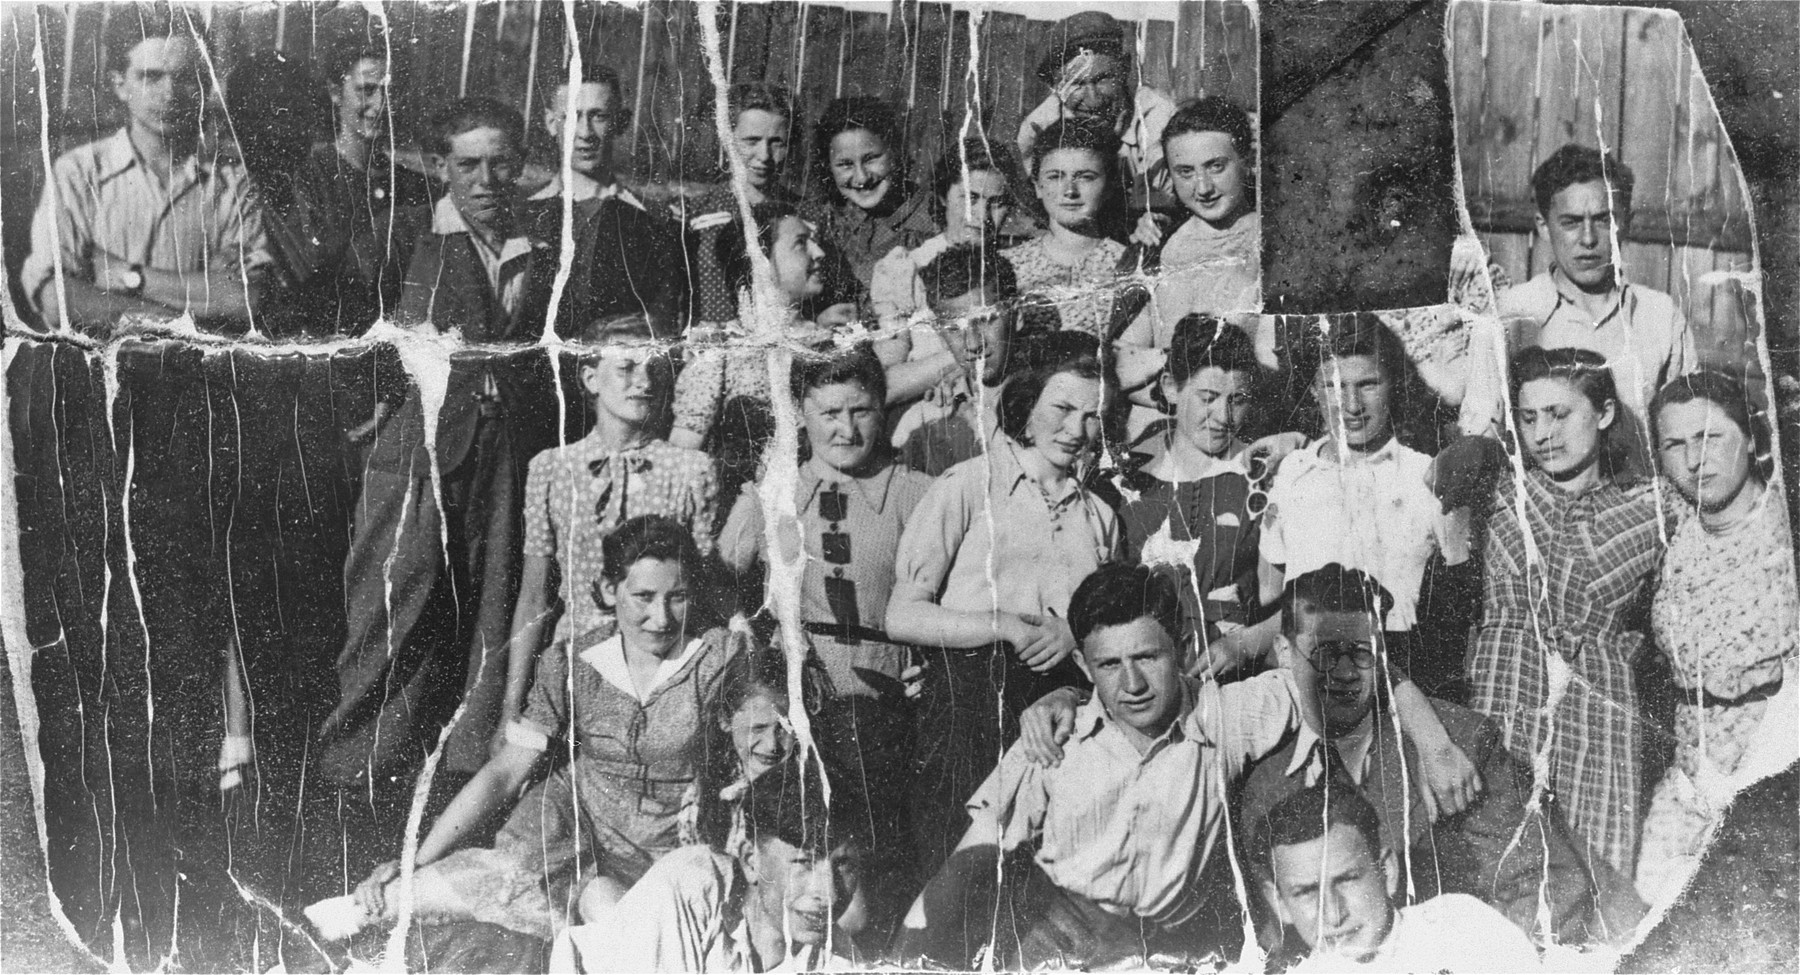 Group portrait of members of the Akiva Zionist youth movement in Tomaszow Mazowiecki.   The portrait is taken in the yard of Akiva's headquarters on Kryzowa Street.  Pictured from right to left: (top row) unknown, Lonia Lisopraska (cut out), Reginka Orenbach, Motek Kuper (above), Stefa Wygocka, Bronka Plat, Tuska Fuks, unknown, unknown, Halinka Rubinek, Mula Weisman.  Also pictured are Icek Rosenblat (leader of the group), Bronka Rozen, Jadzia Strykowska, Jurek Wald, Chajka Rozenbaum, Aronek Cohen, Lolek Donner.  The donor, Judy Lachman, is the girl directly below the hole. She carried the photo with her throughout the war.